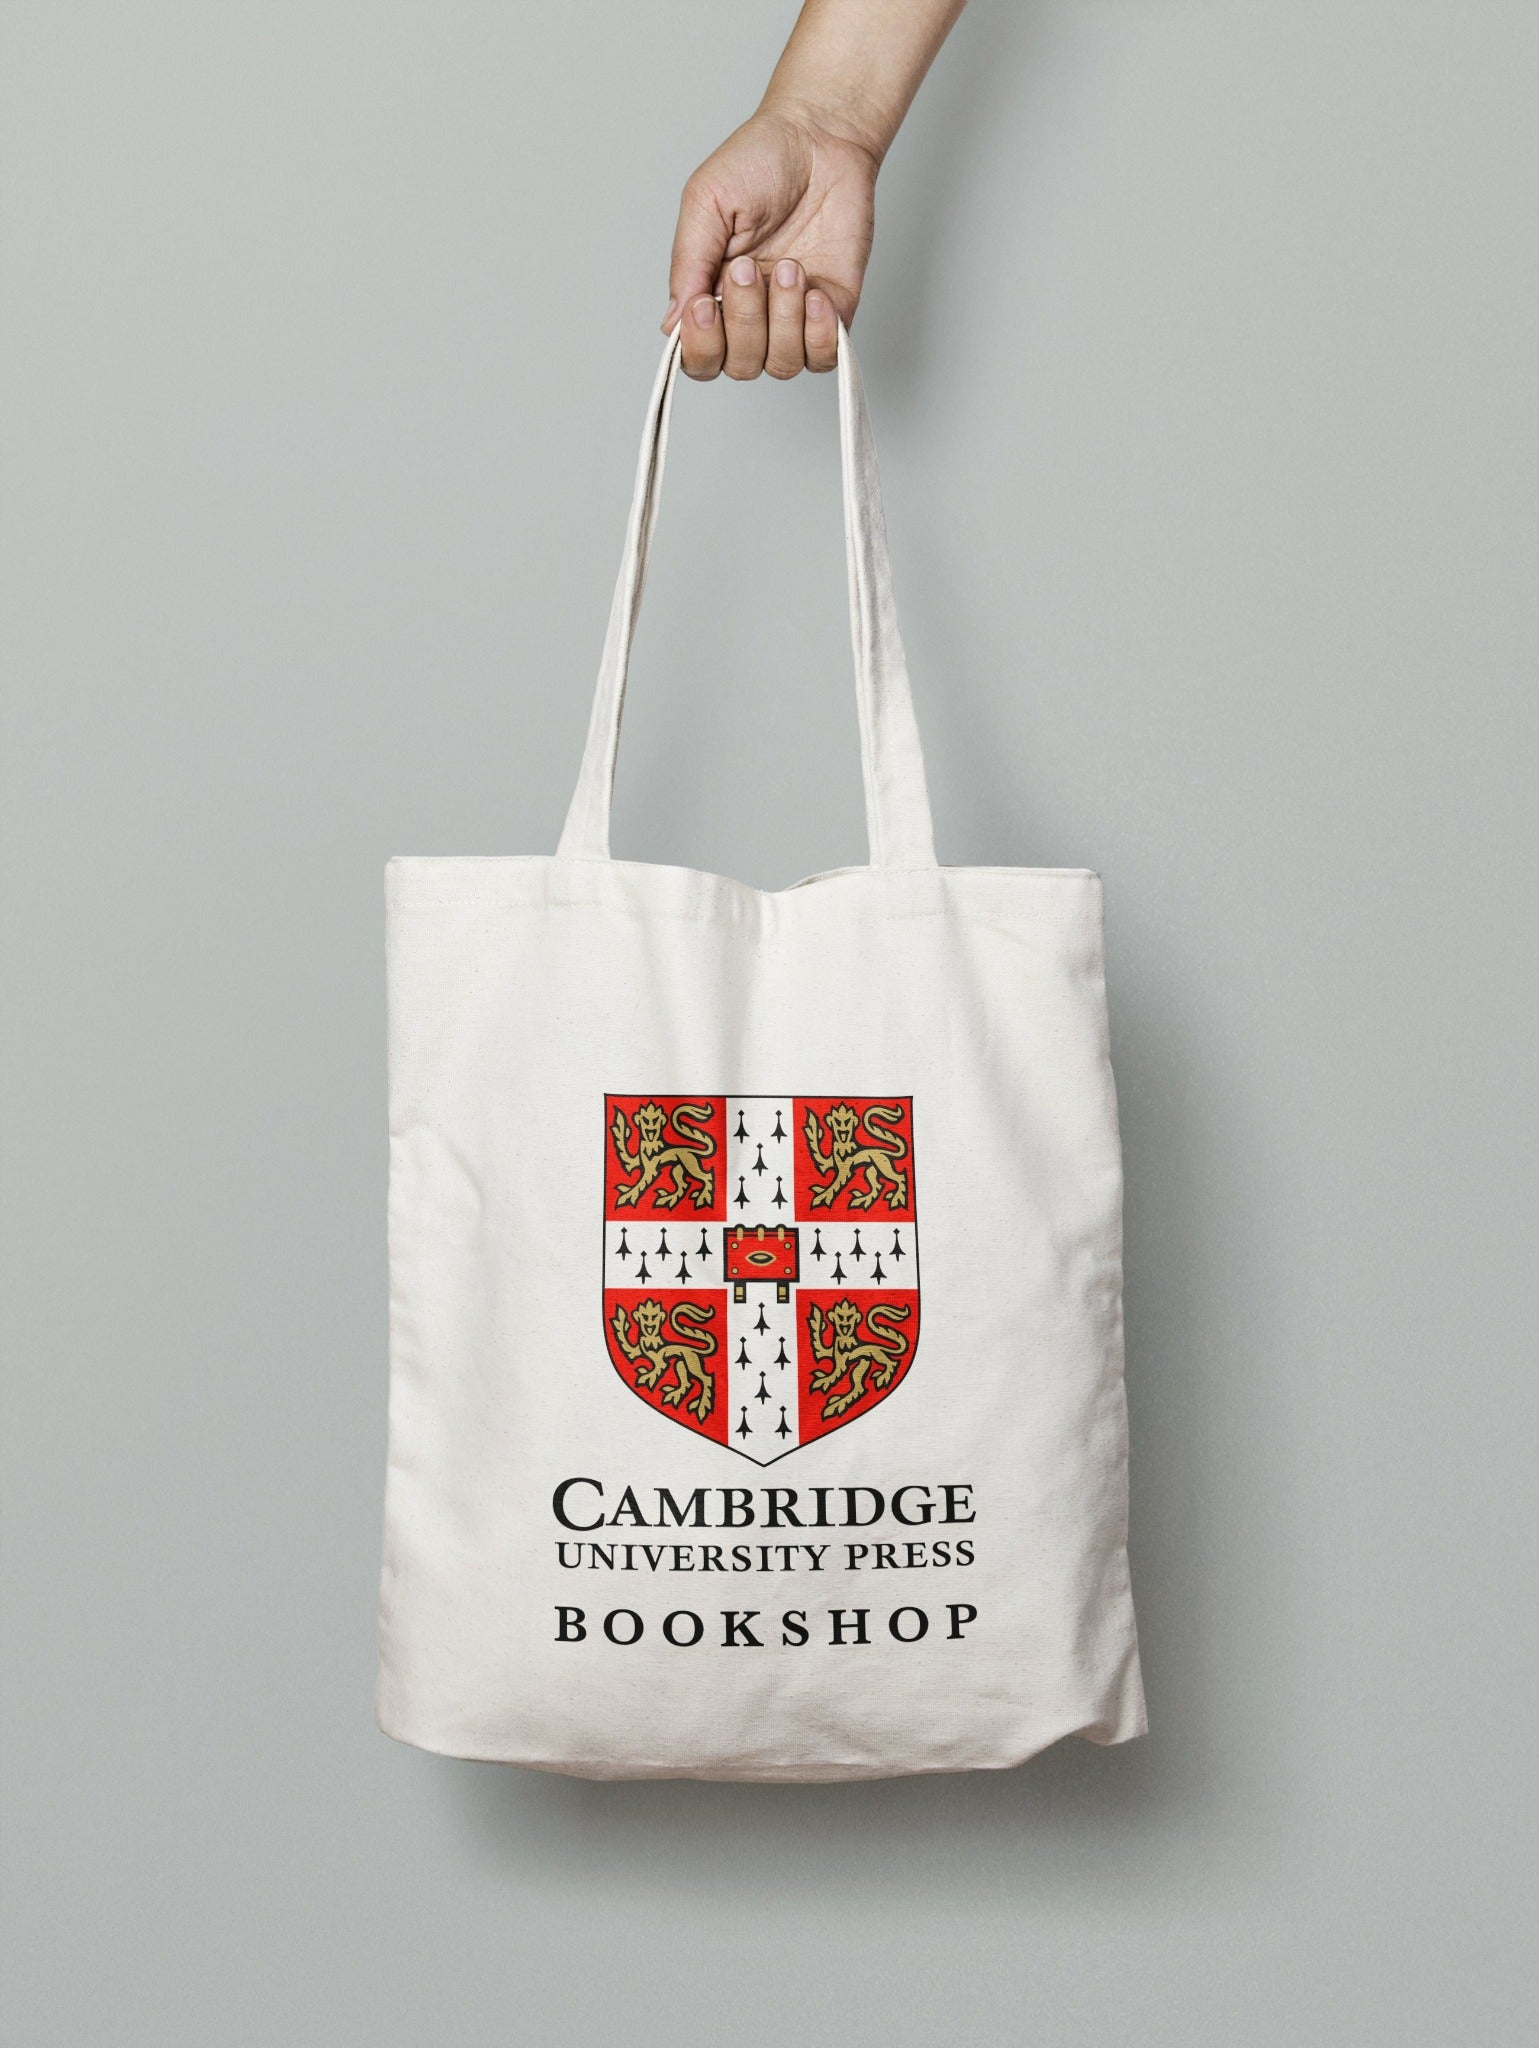 CUP Bookshop Tote Bag